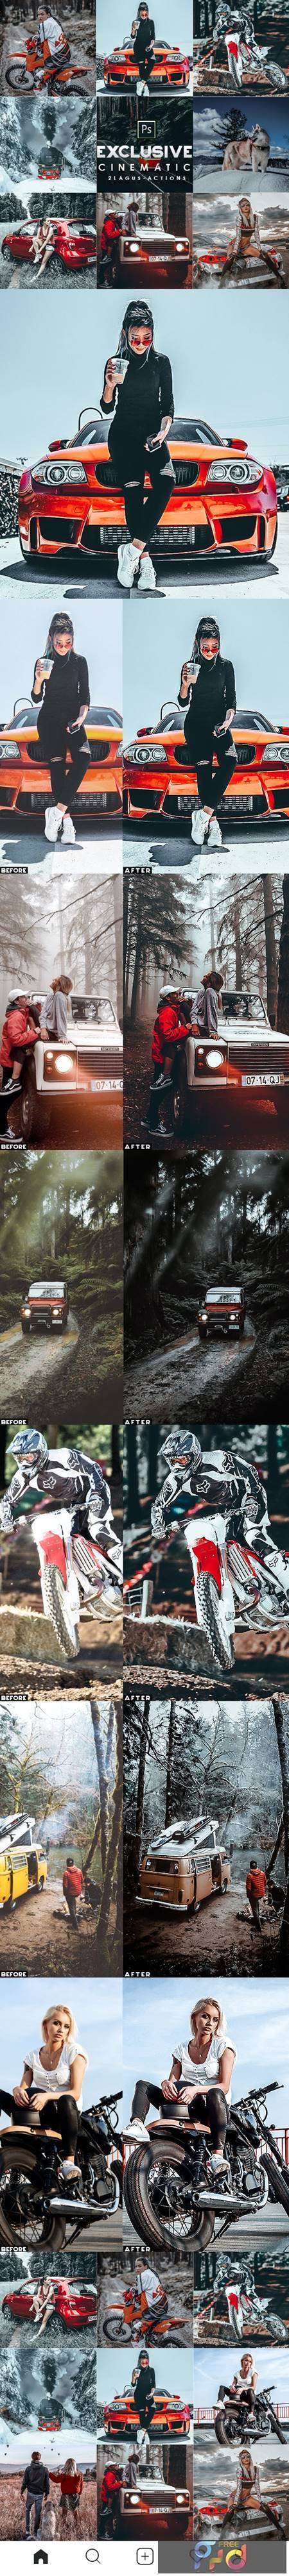 2LAGUS Exclusive Photoshop Actions 28740854 1